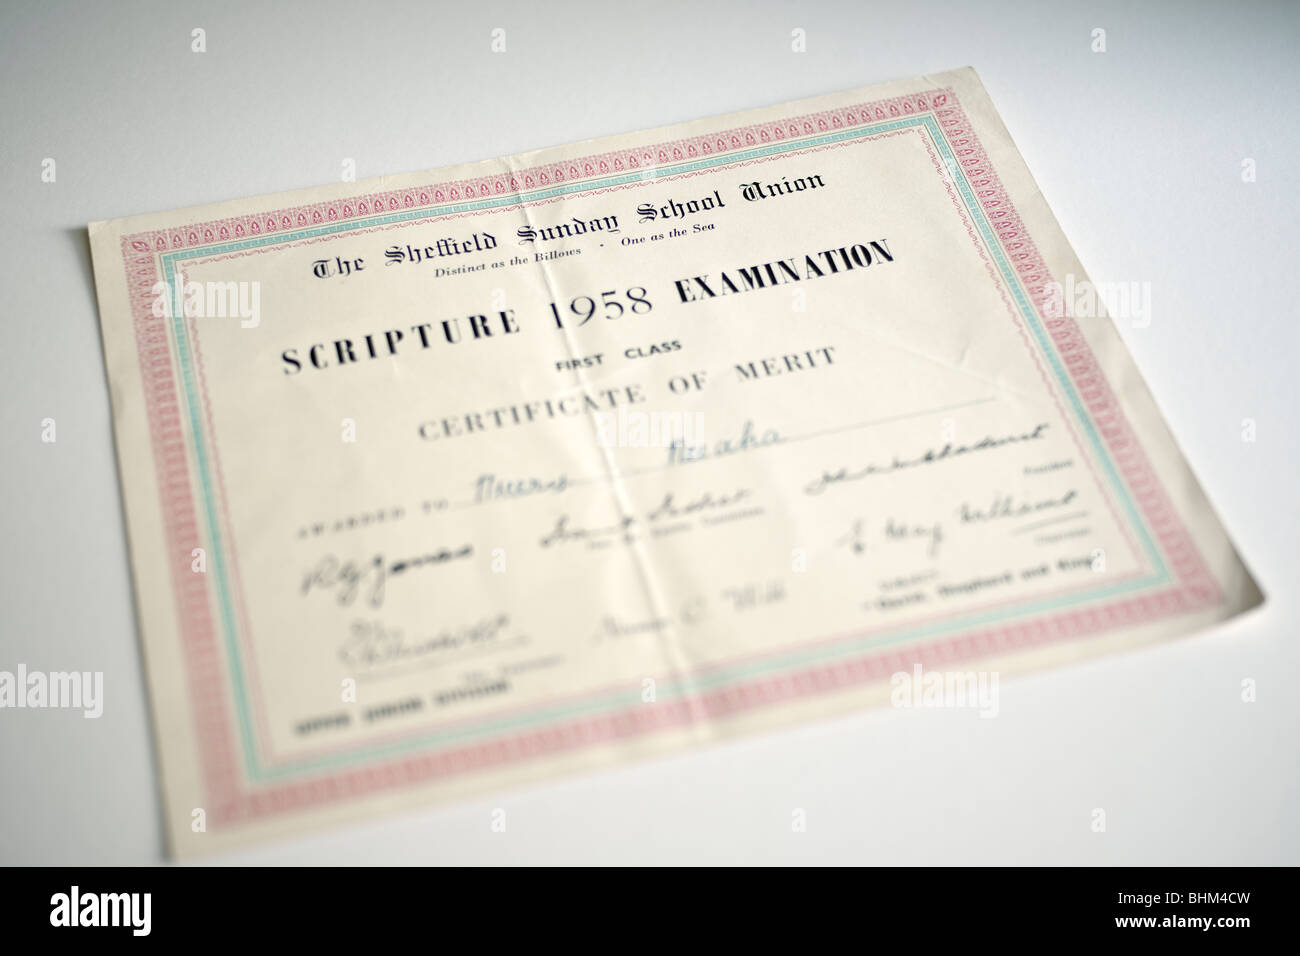 Sheffield Sunday school Union scripture examination certificate of merit from 1958 - Stock Image